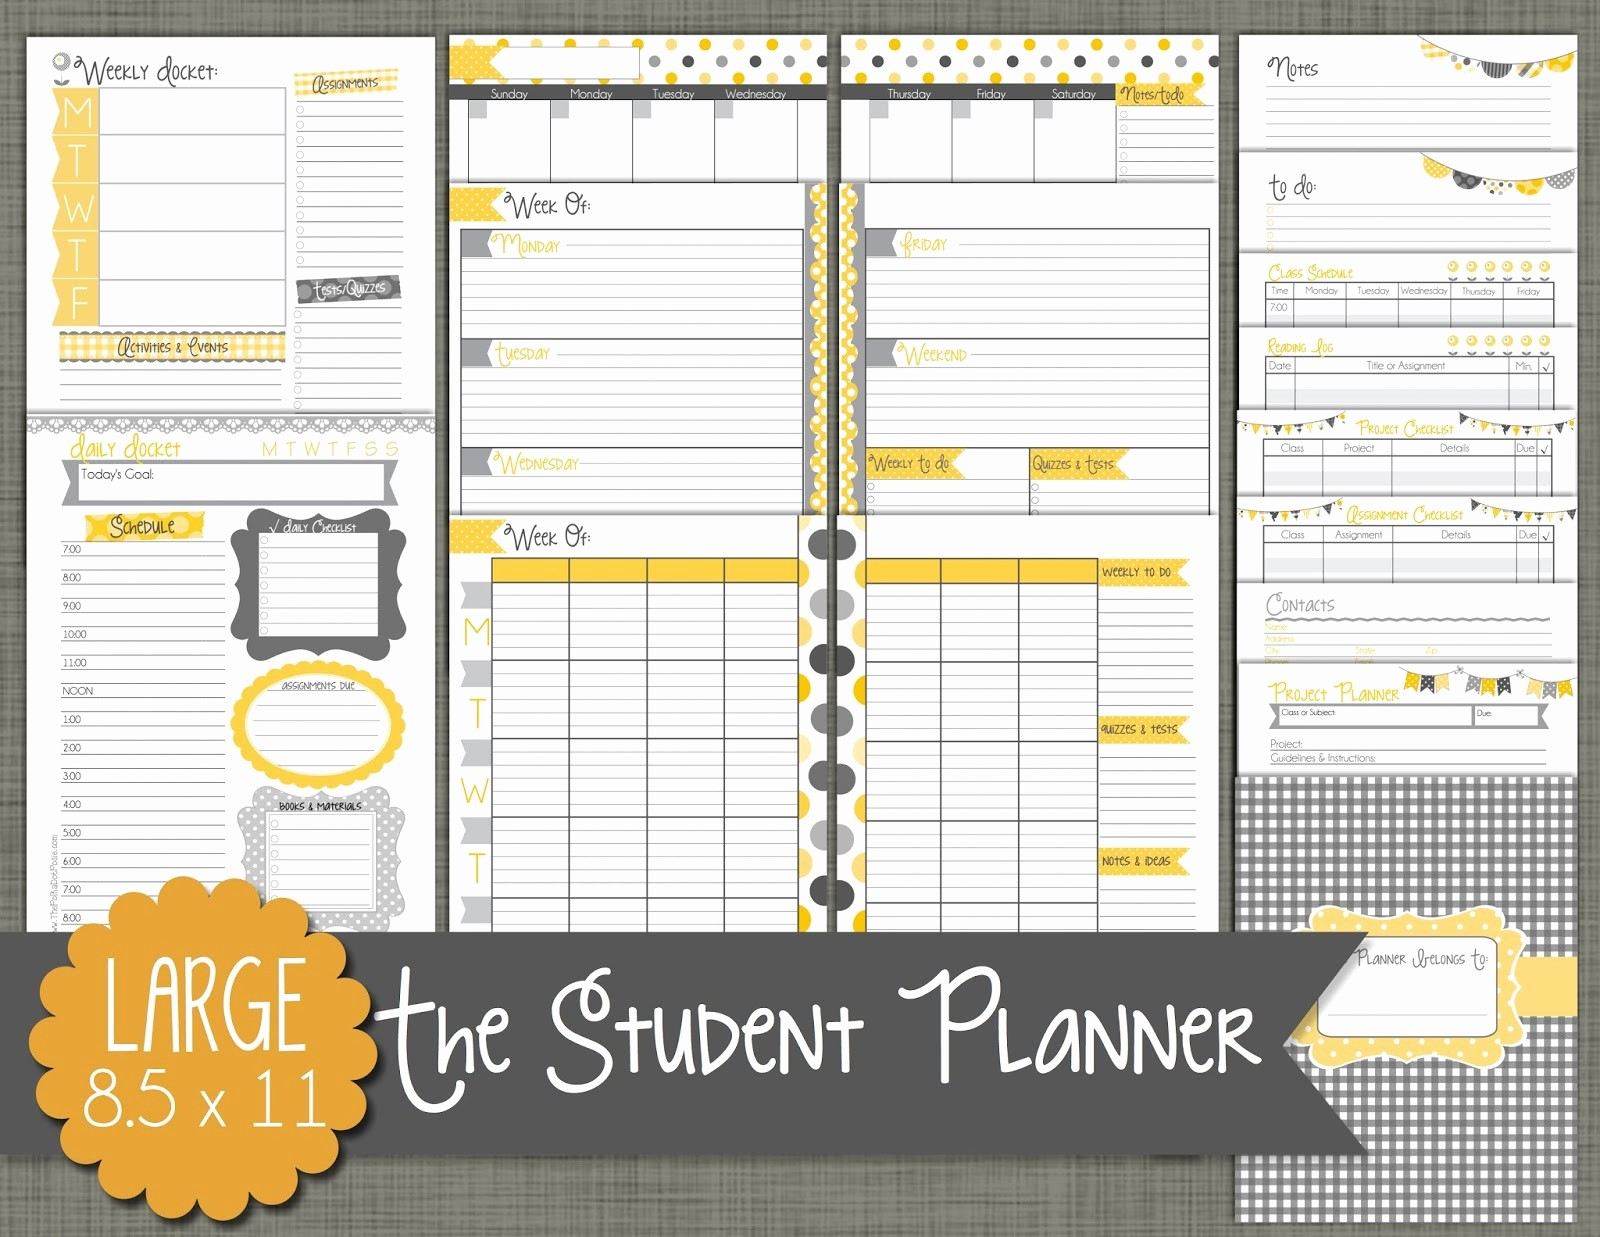 Printable Weekly Planner for Students Unique Student Weekly Planner Template Beautiful Template